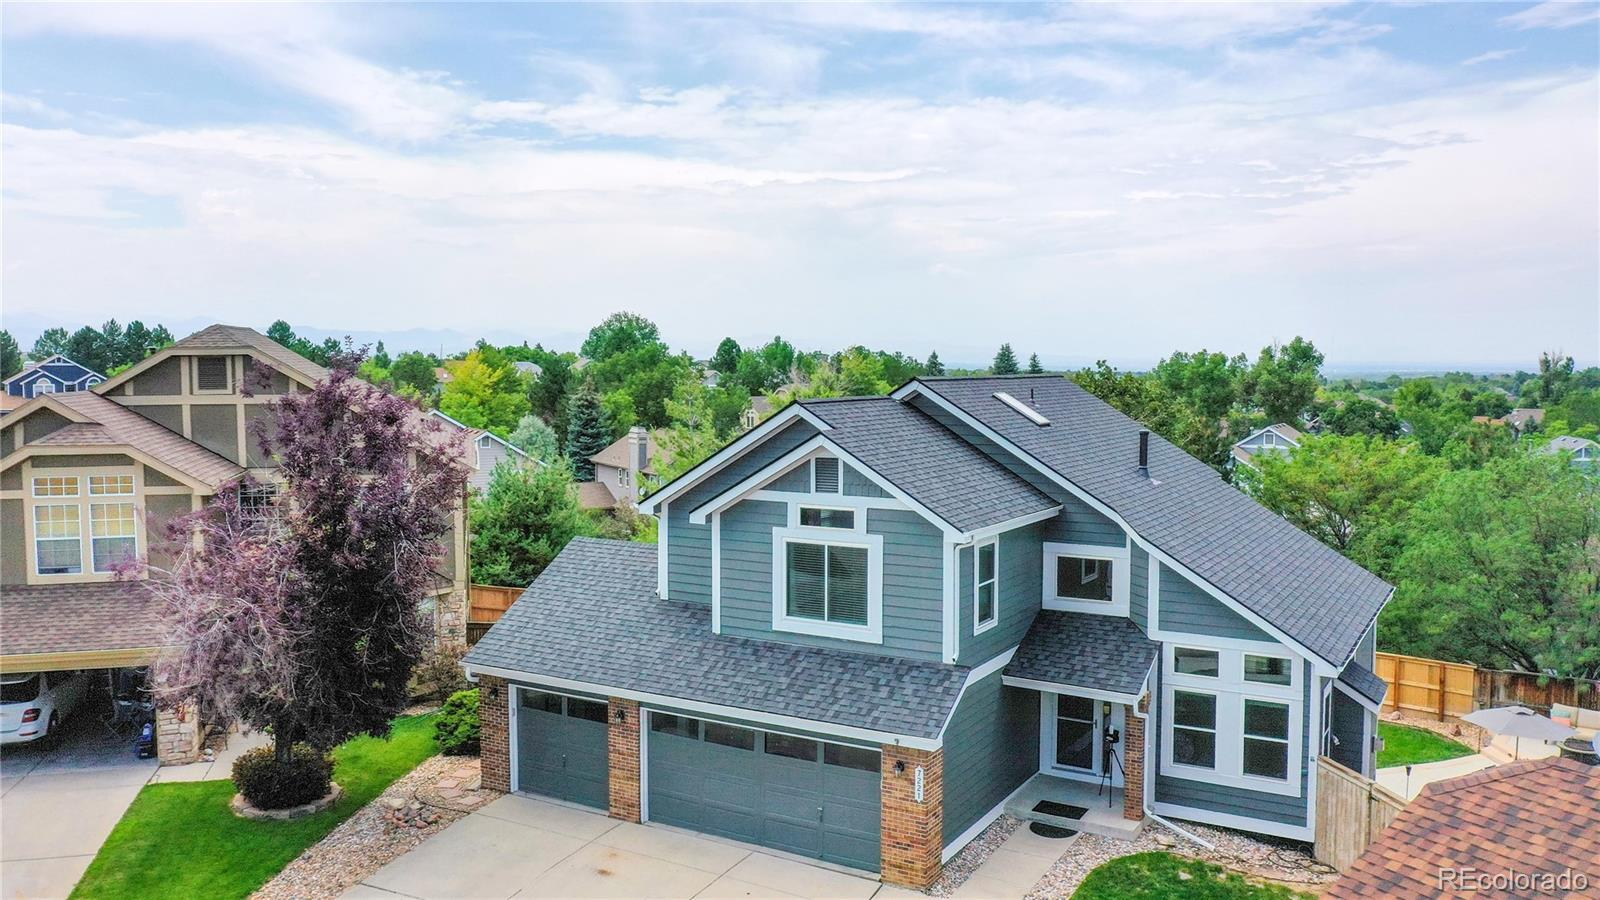 7221 Buckingham Place, Highlands Ranch, CO 80130 - #: 7866621